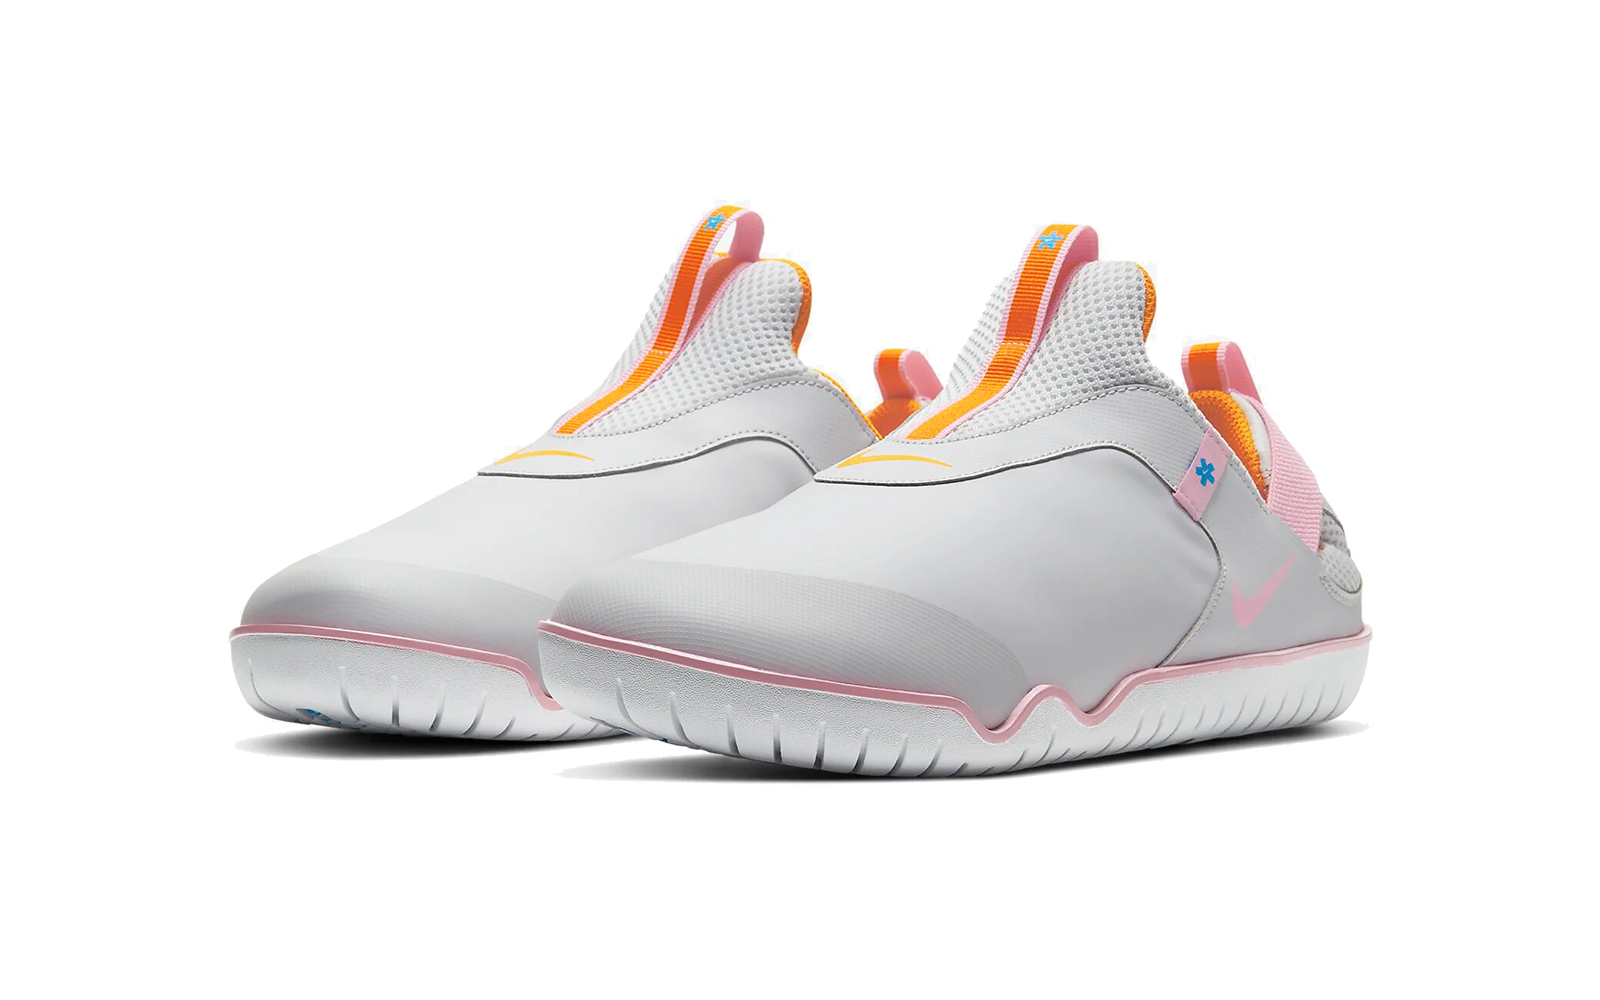 Más lejano Hacer deporte caja  Nike's New Comfy Shoe Is Made for Medical Workers Who Stand All Day |  Travel + Leisure